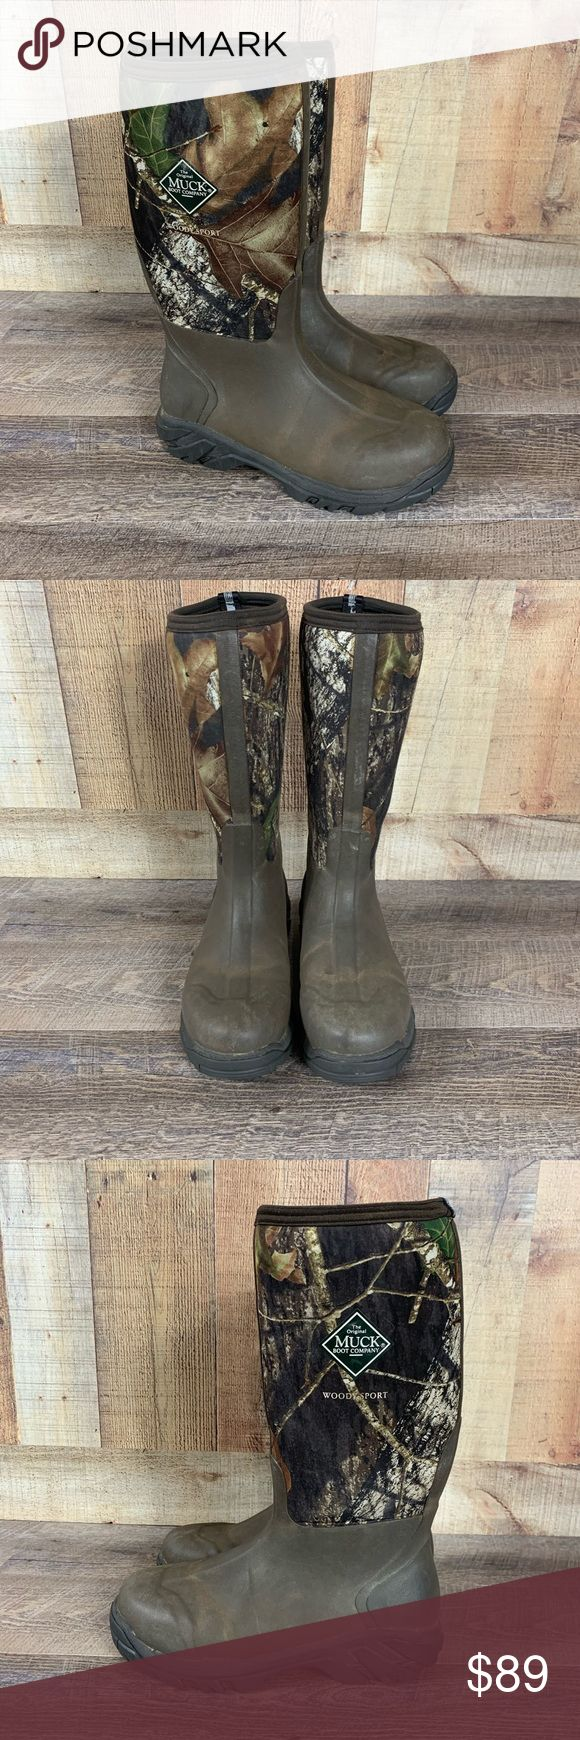 The Original Muck Boot Company Woody Sport Boot Size 10